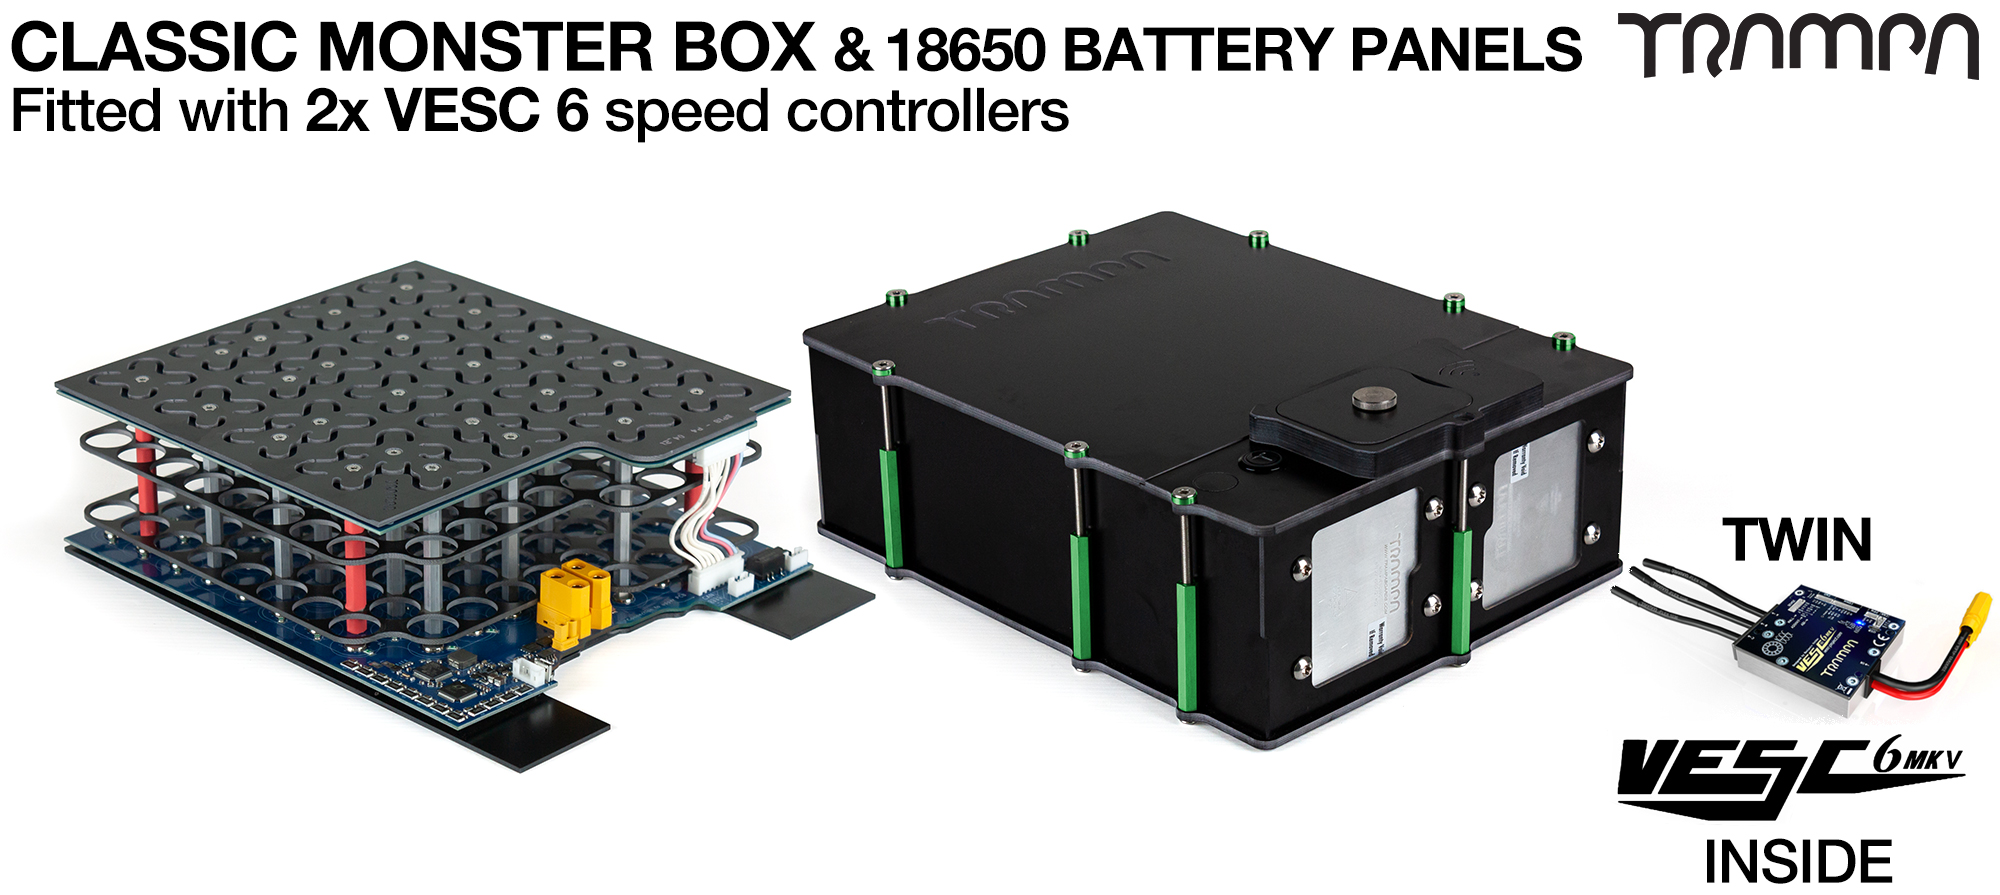 MONSTER BOX MkIV - with 2x VESC & 18650 PCB Pack fits 84x 18650 cells. Is specifically made to work in conjunction with TRAMPA's Electric Decks but can be adapted to fit anything